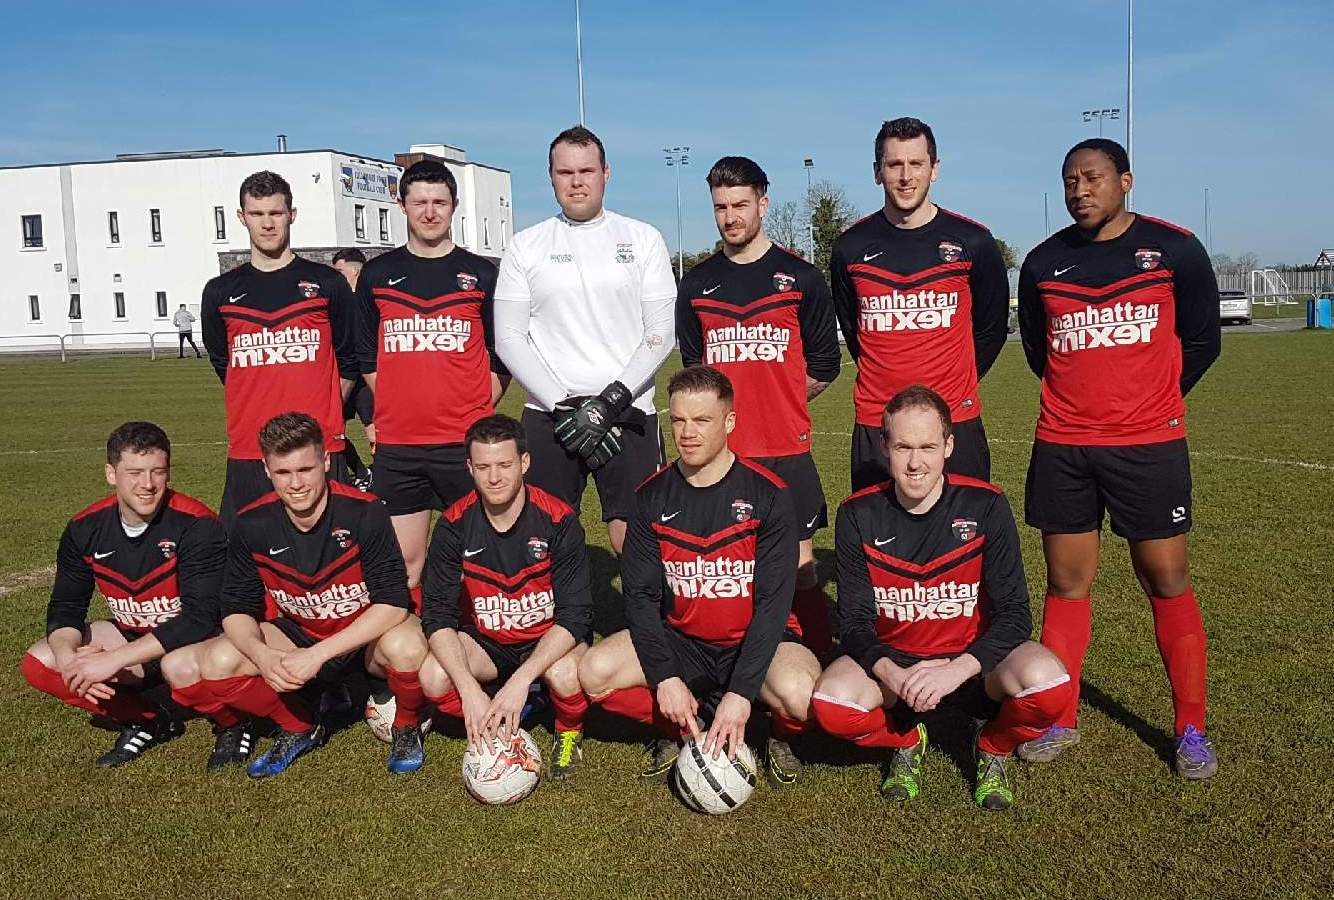 Towerhill Rovers 2016-2017 Division 1 Runners Up